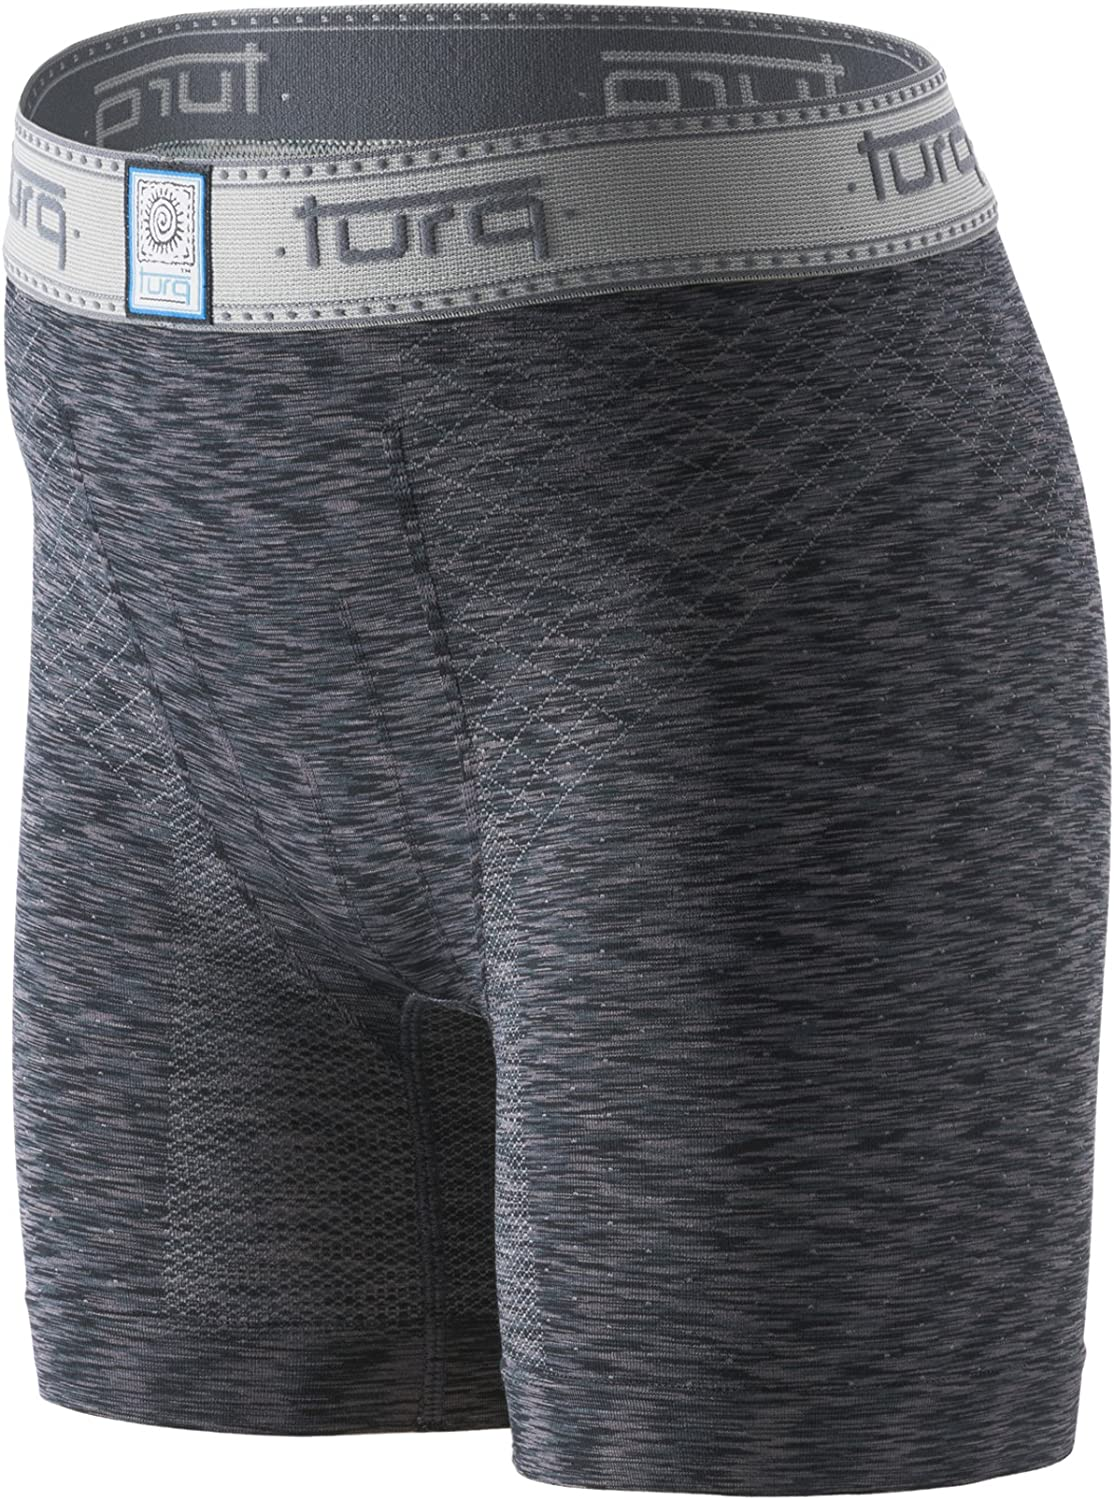 Turq Performance Boys Underwear | Boys Boxer Briefs for Active Lifestyles and Sports (Youth Small (23-24), Storm Black)